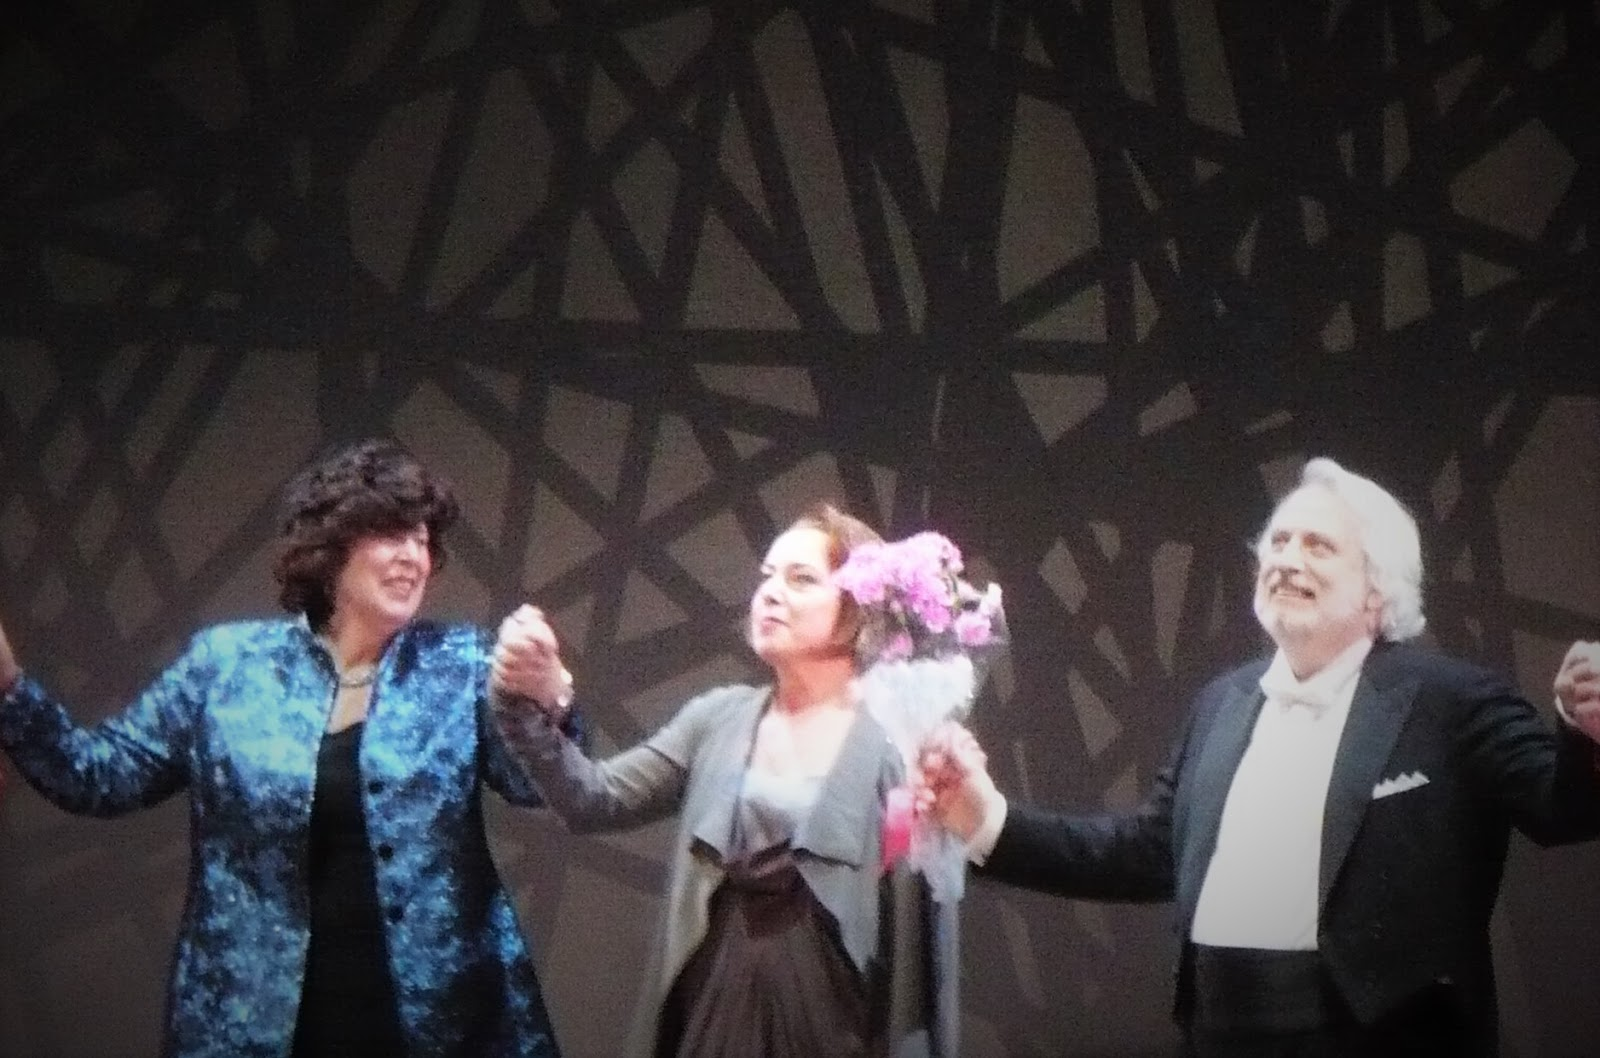 IN PERFORMANCE: (from left to right) Director FRANCESCA ZAMBELLO, soprano NINA STEMME (Brünnhilde), and conductor PHILIPPE AUGUIN duing curtain calls for Washington National Opera's performance of Richard Wagner's GÖTTERDÄMMERUNG, 22 May 2016 [Photo by the author]